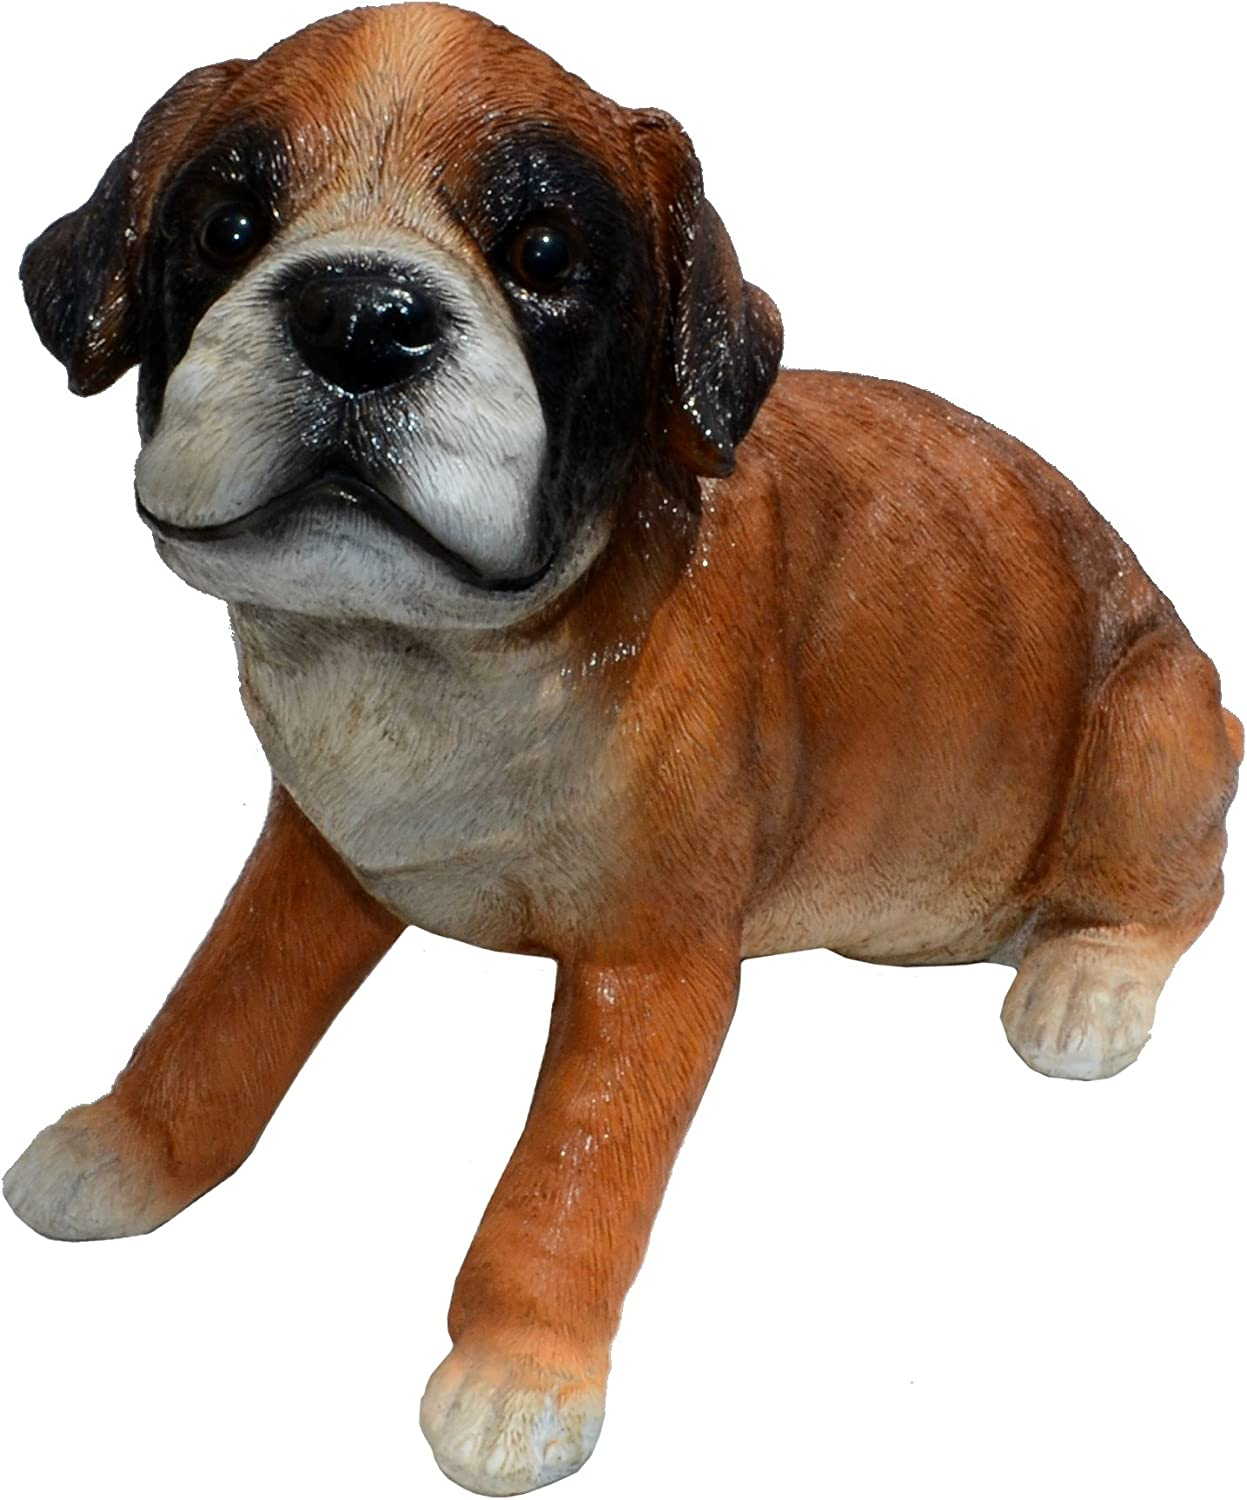 Michael Carr Designs Punch-Boxer Puppy M Outdoor Puppy Dog Figurine for Gardens, patios and lawns (80108)